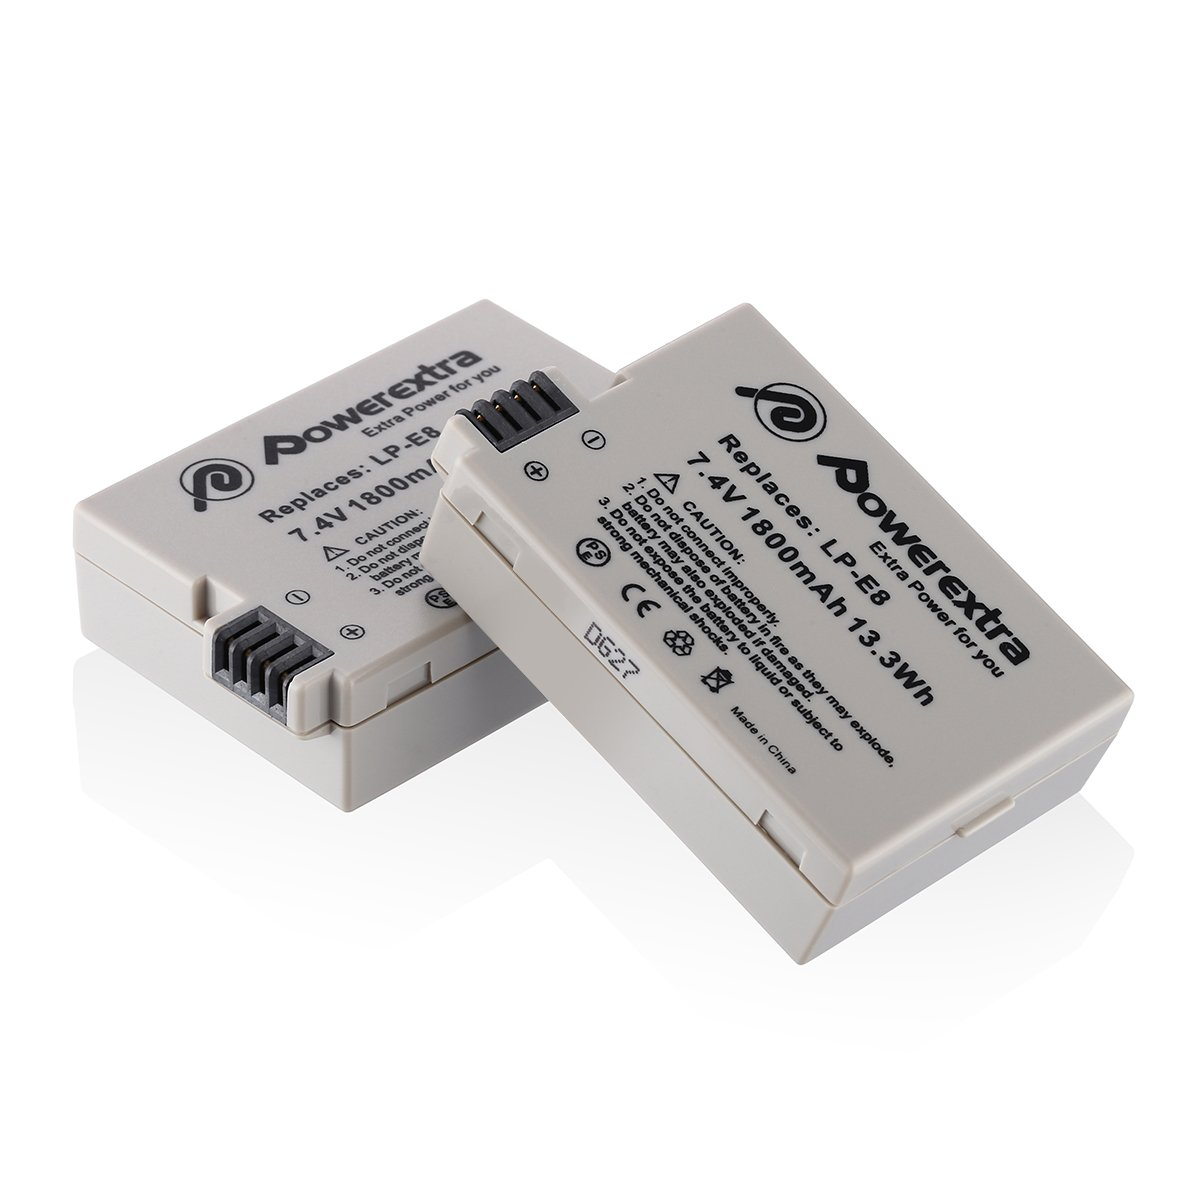 Powerextra 2 Pack 7.4V 1800mAh Li-ion Replacement Canon LP-E8 Battery for Canon EOS Rebel T3i, T2i, T4i, T5i, EOS 600D, 550D, 650D, 700D, Kiss X5, X4, Kiss X6, LC-E8E by Powerextra